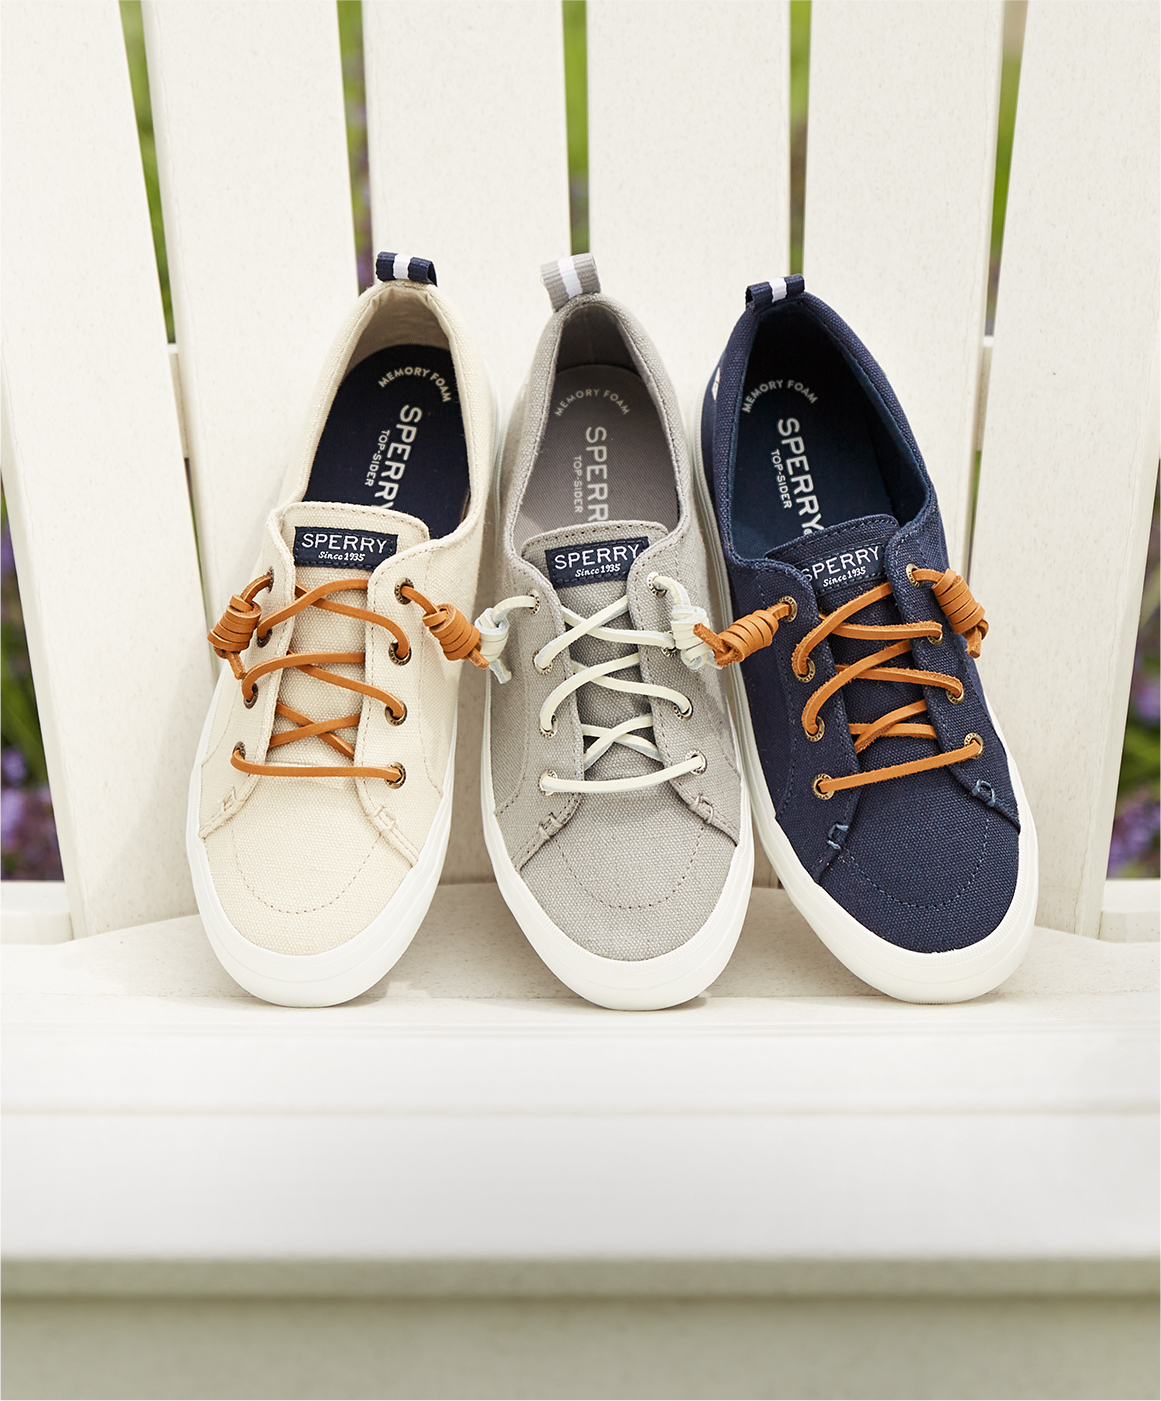 Sperry sneakers.